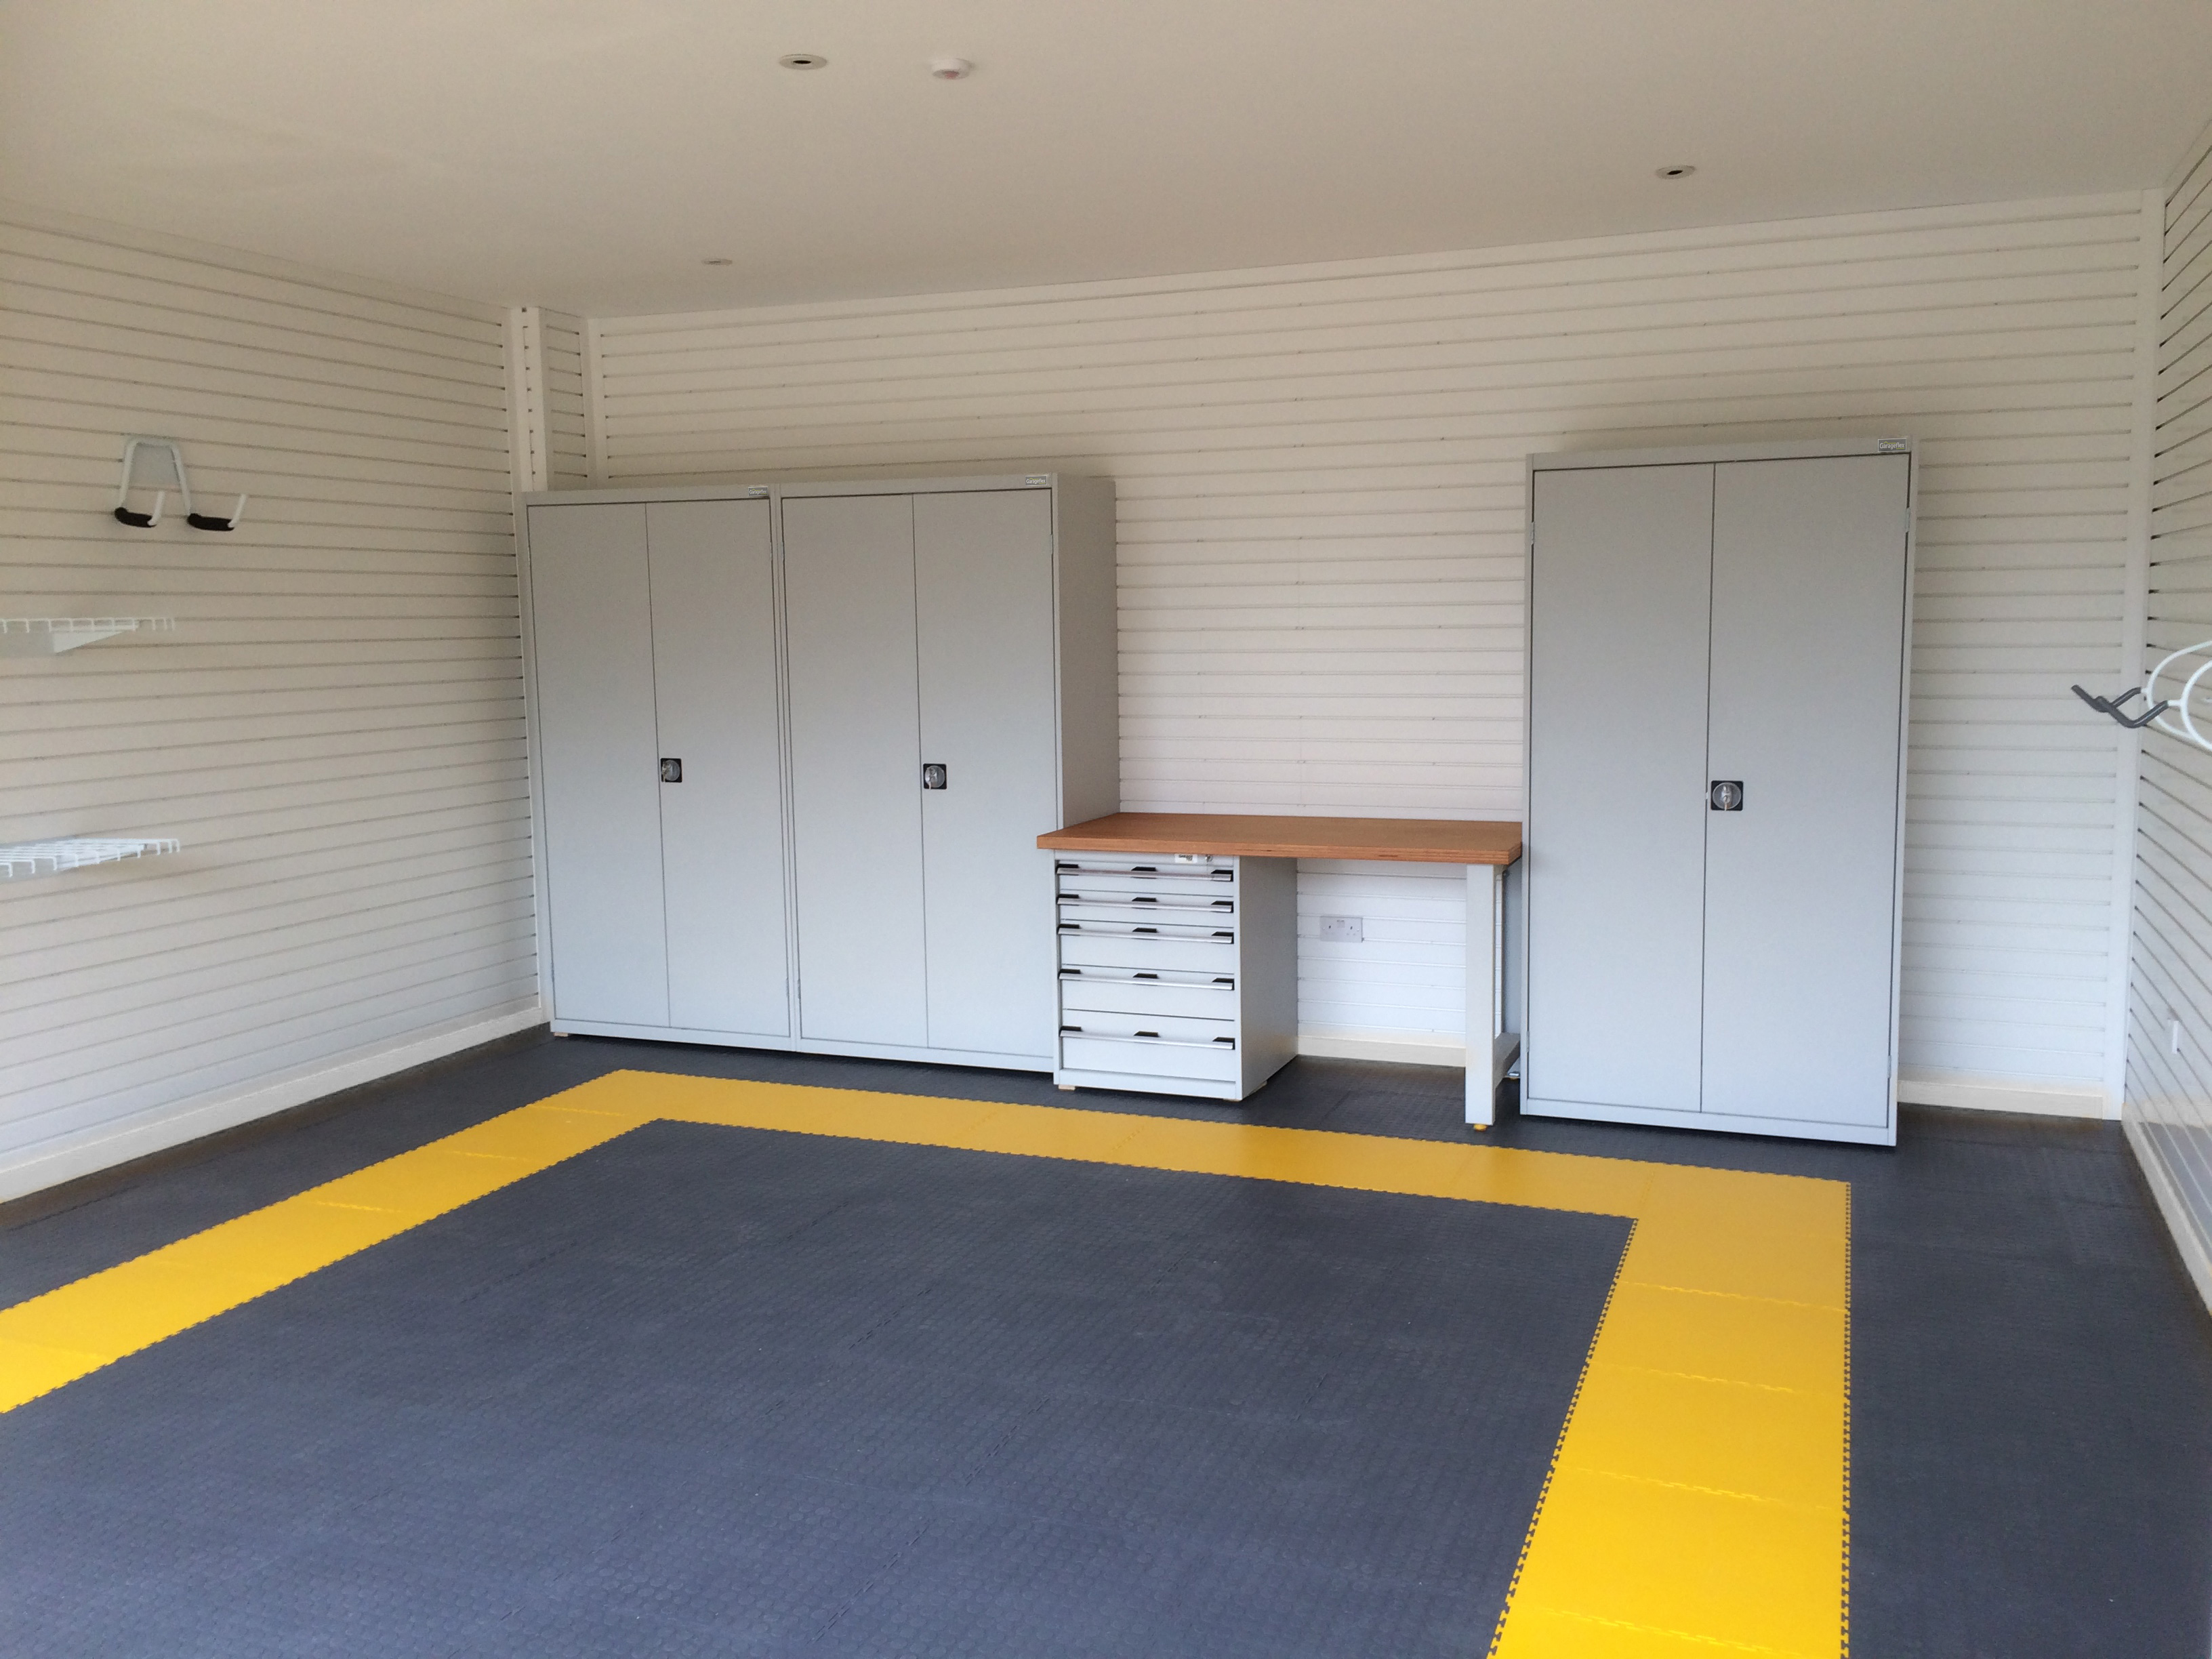 Dark Grey floor tiles with a yellow border look great in this garage